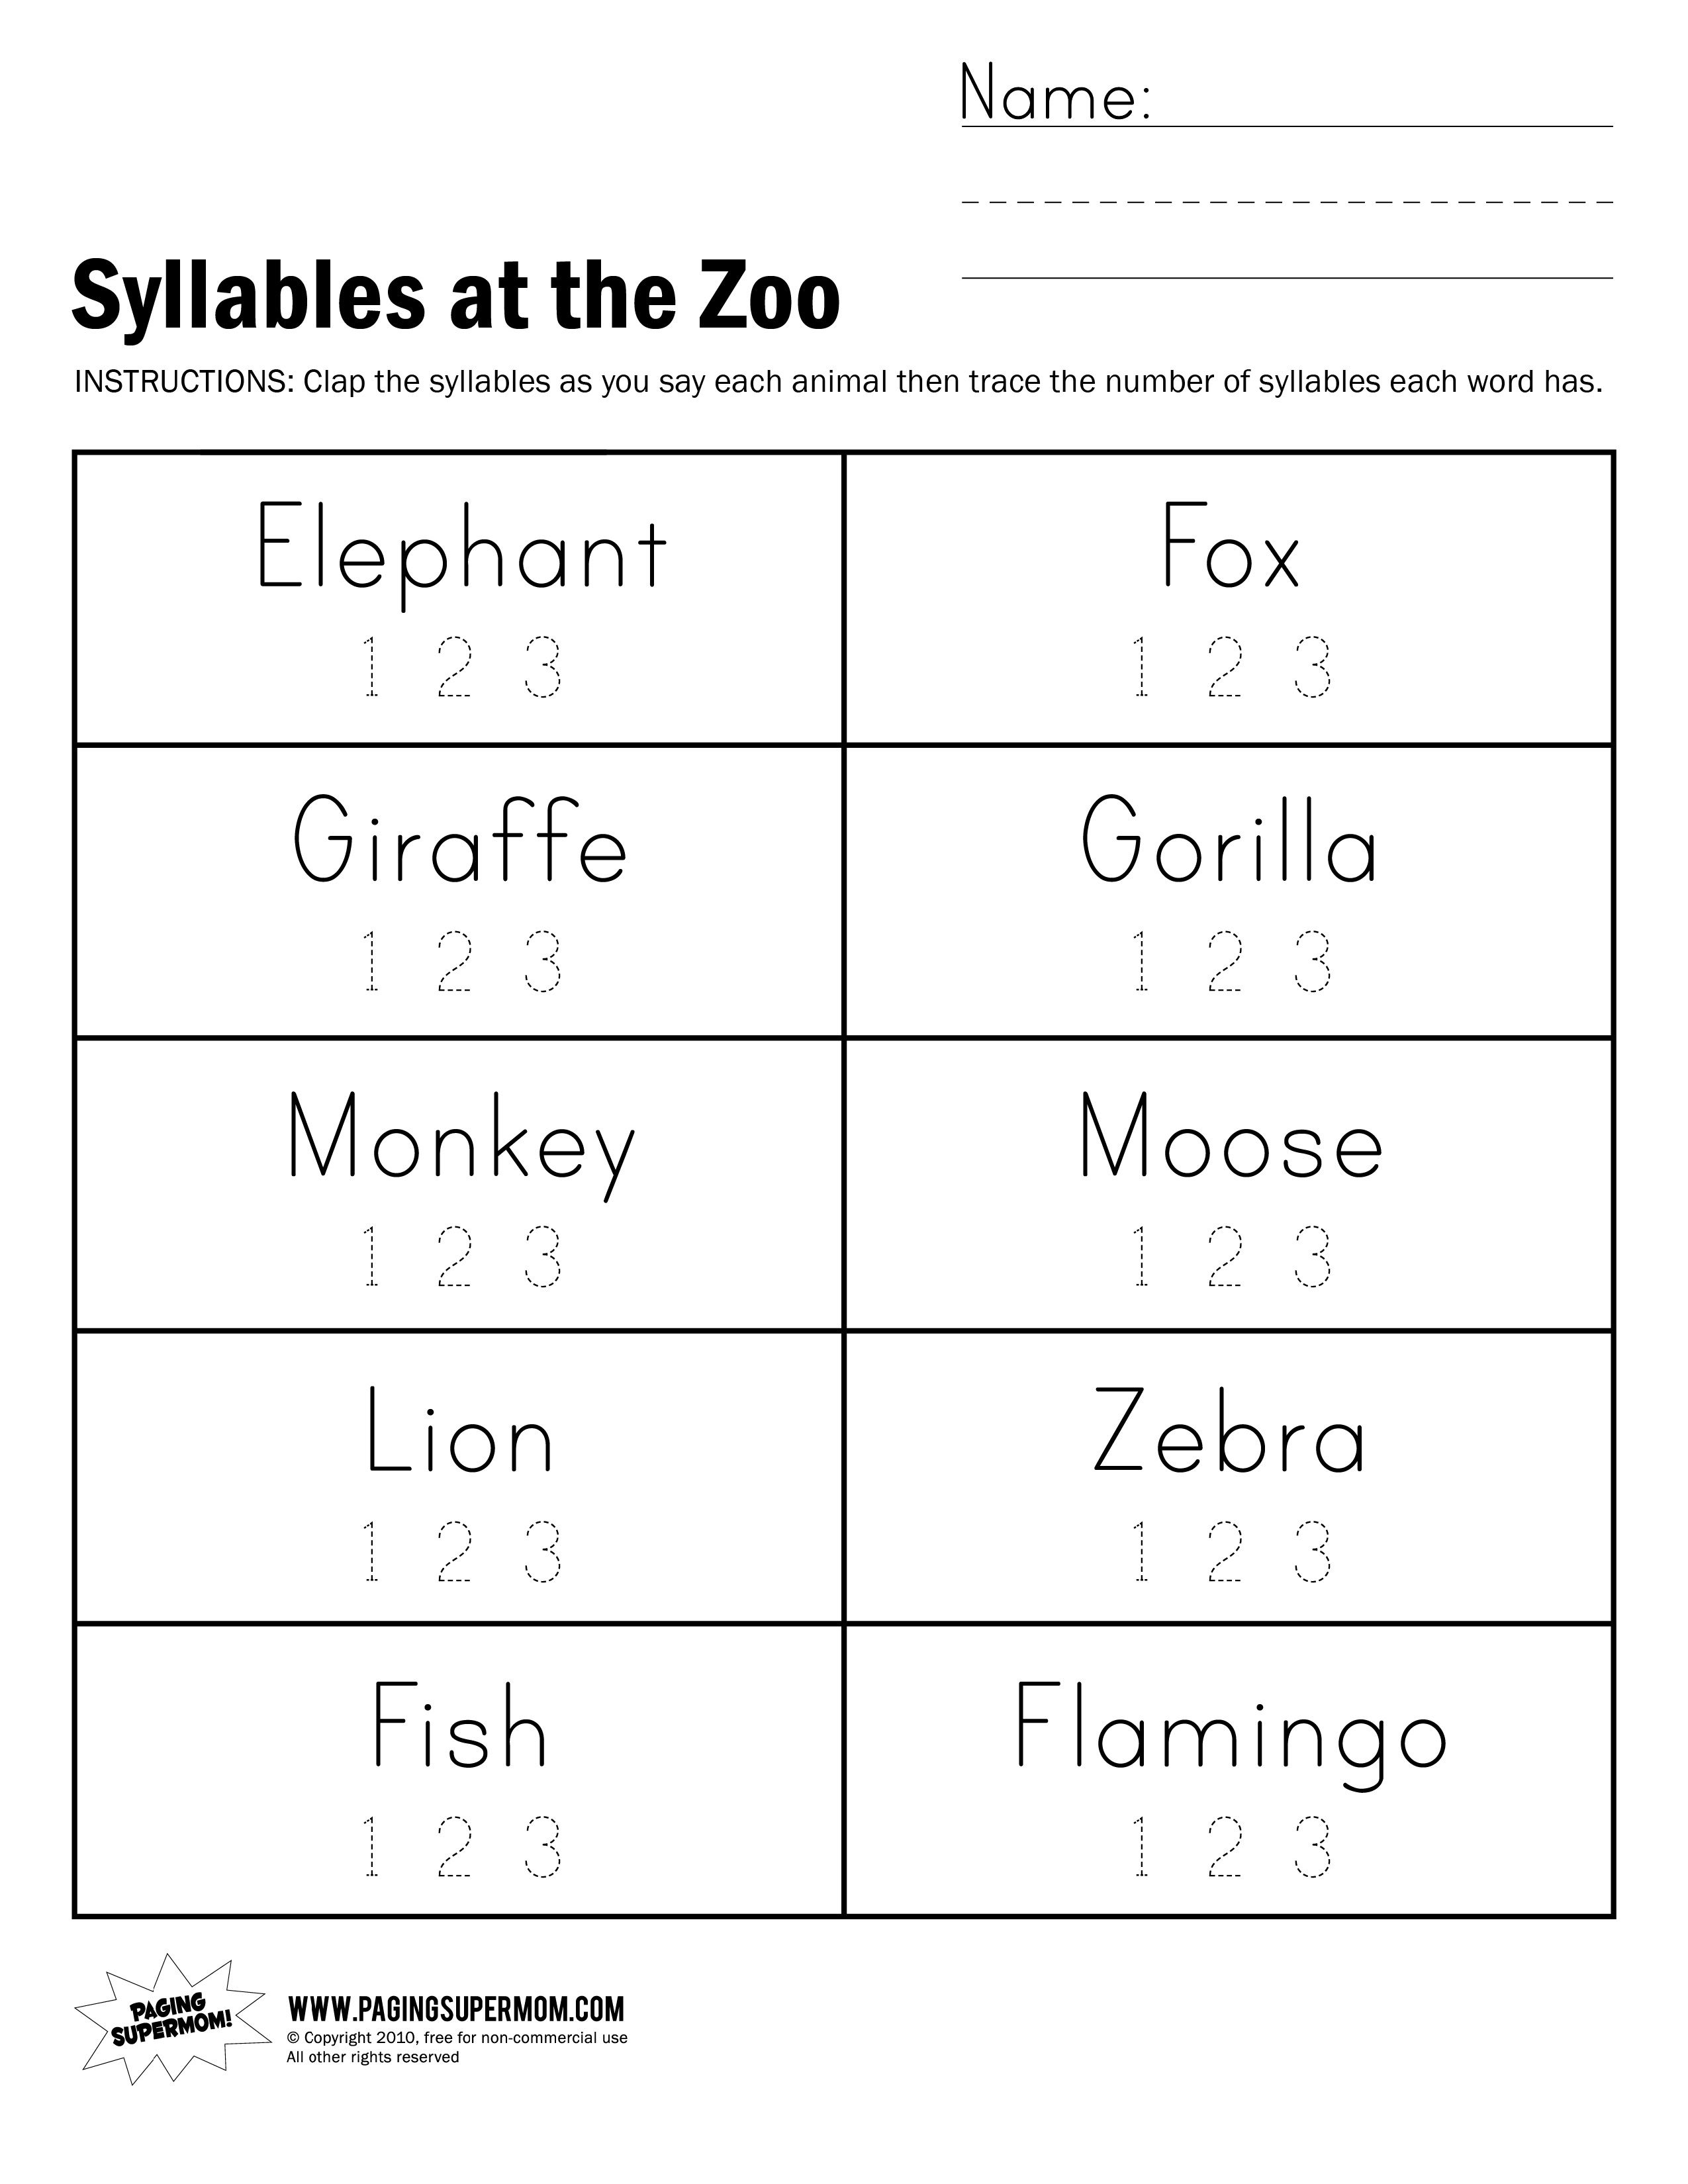 Syllables At The Zoo Worksheet